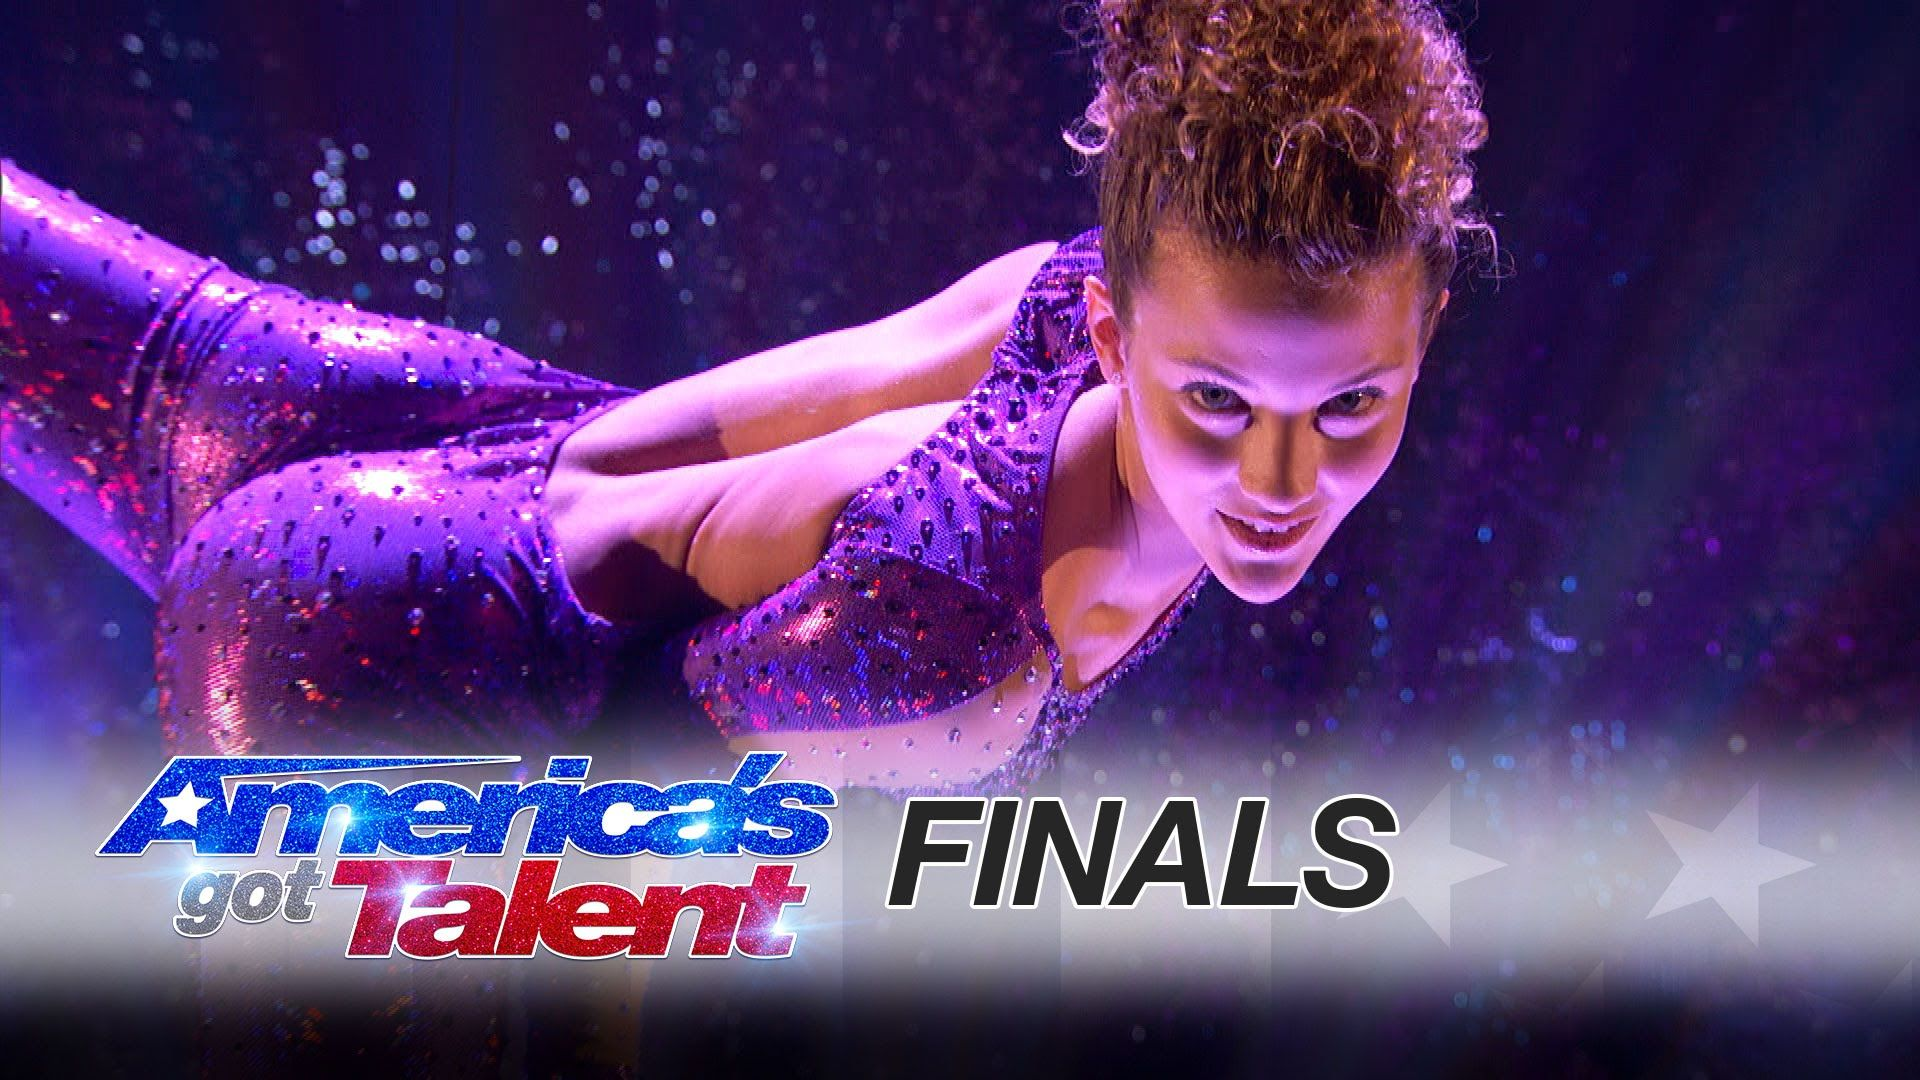 Sofie dossi from america s got talent pulls off an amazing routine for her finale performance - Sofie dossi gymnastics ...